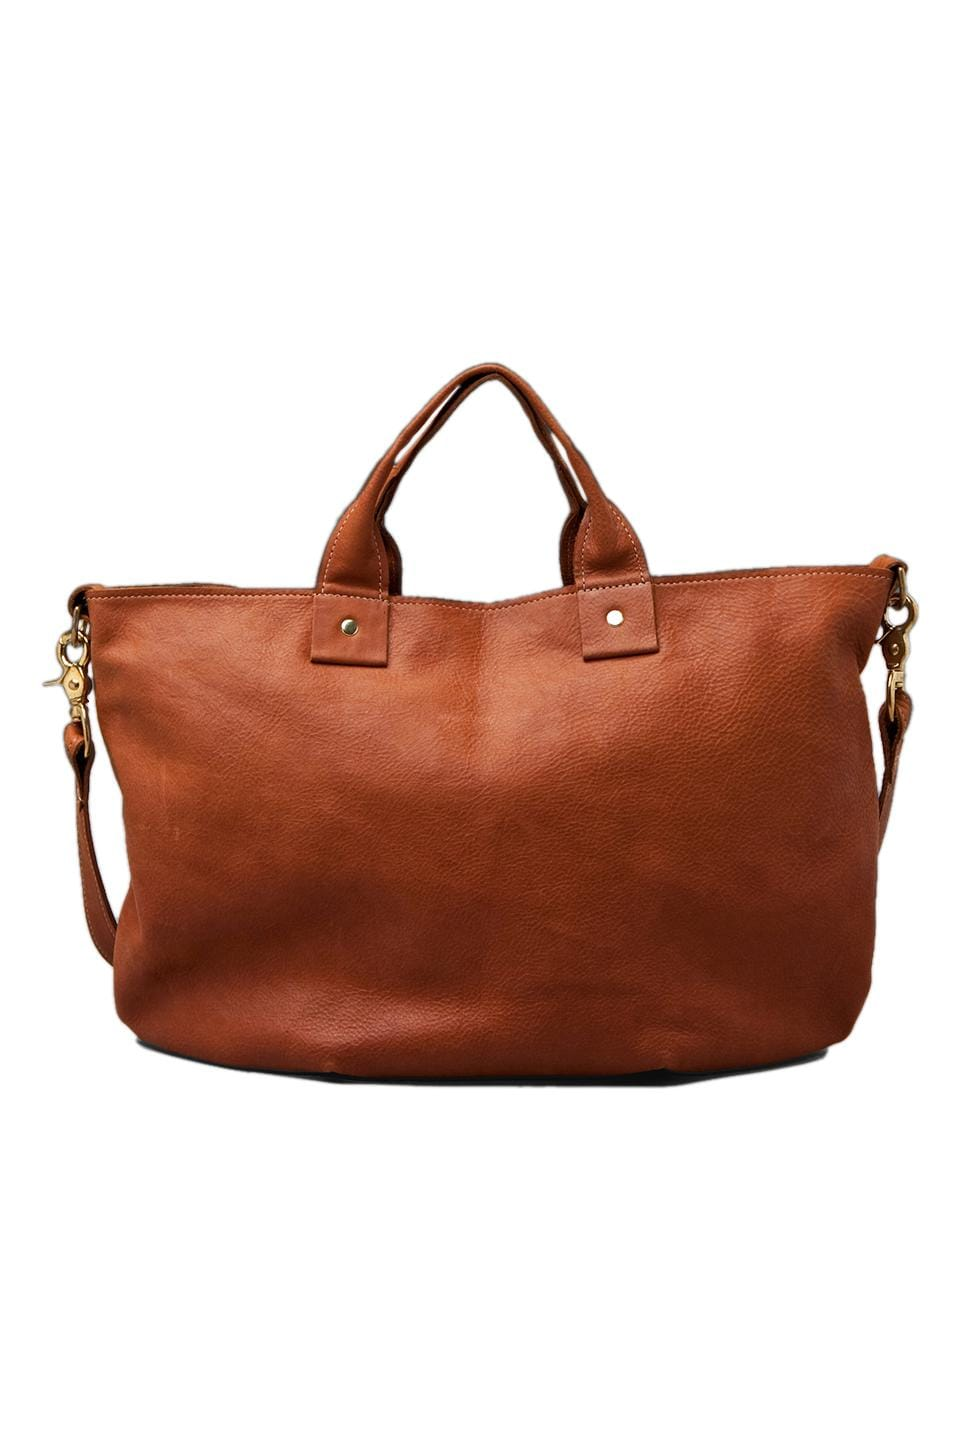 Clare V. Messenger Bag in Cognac